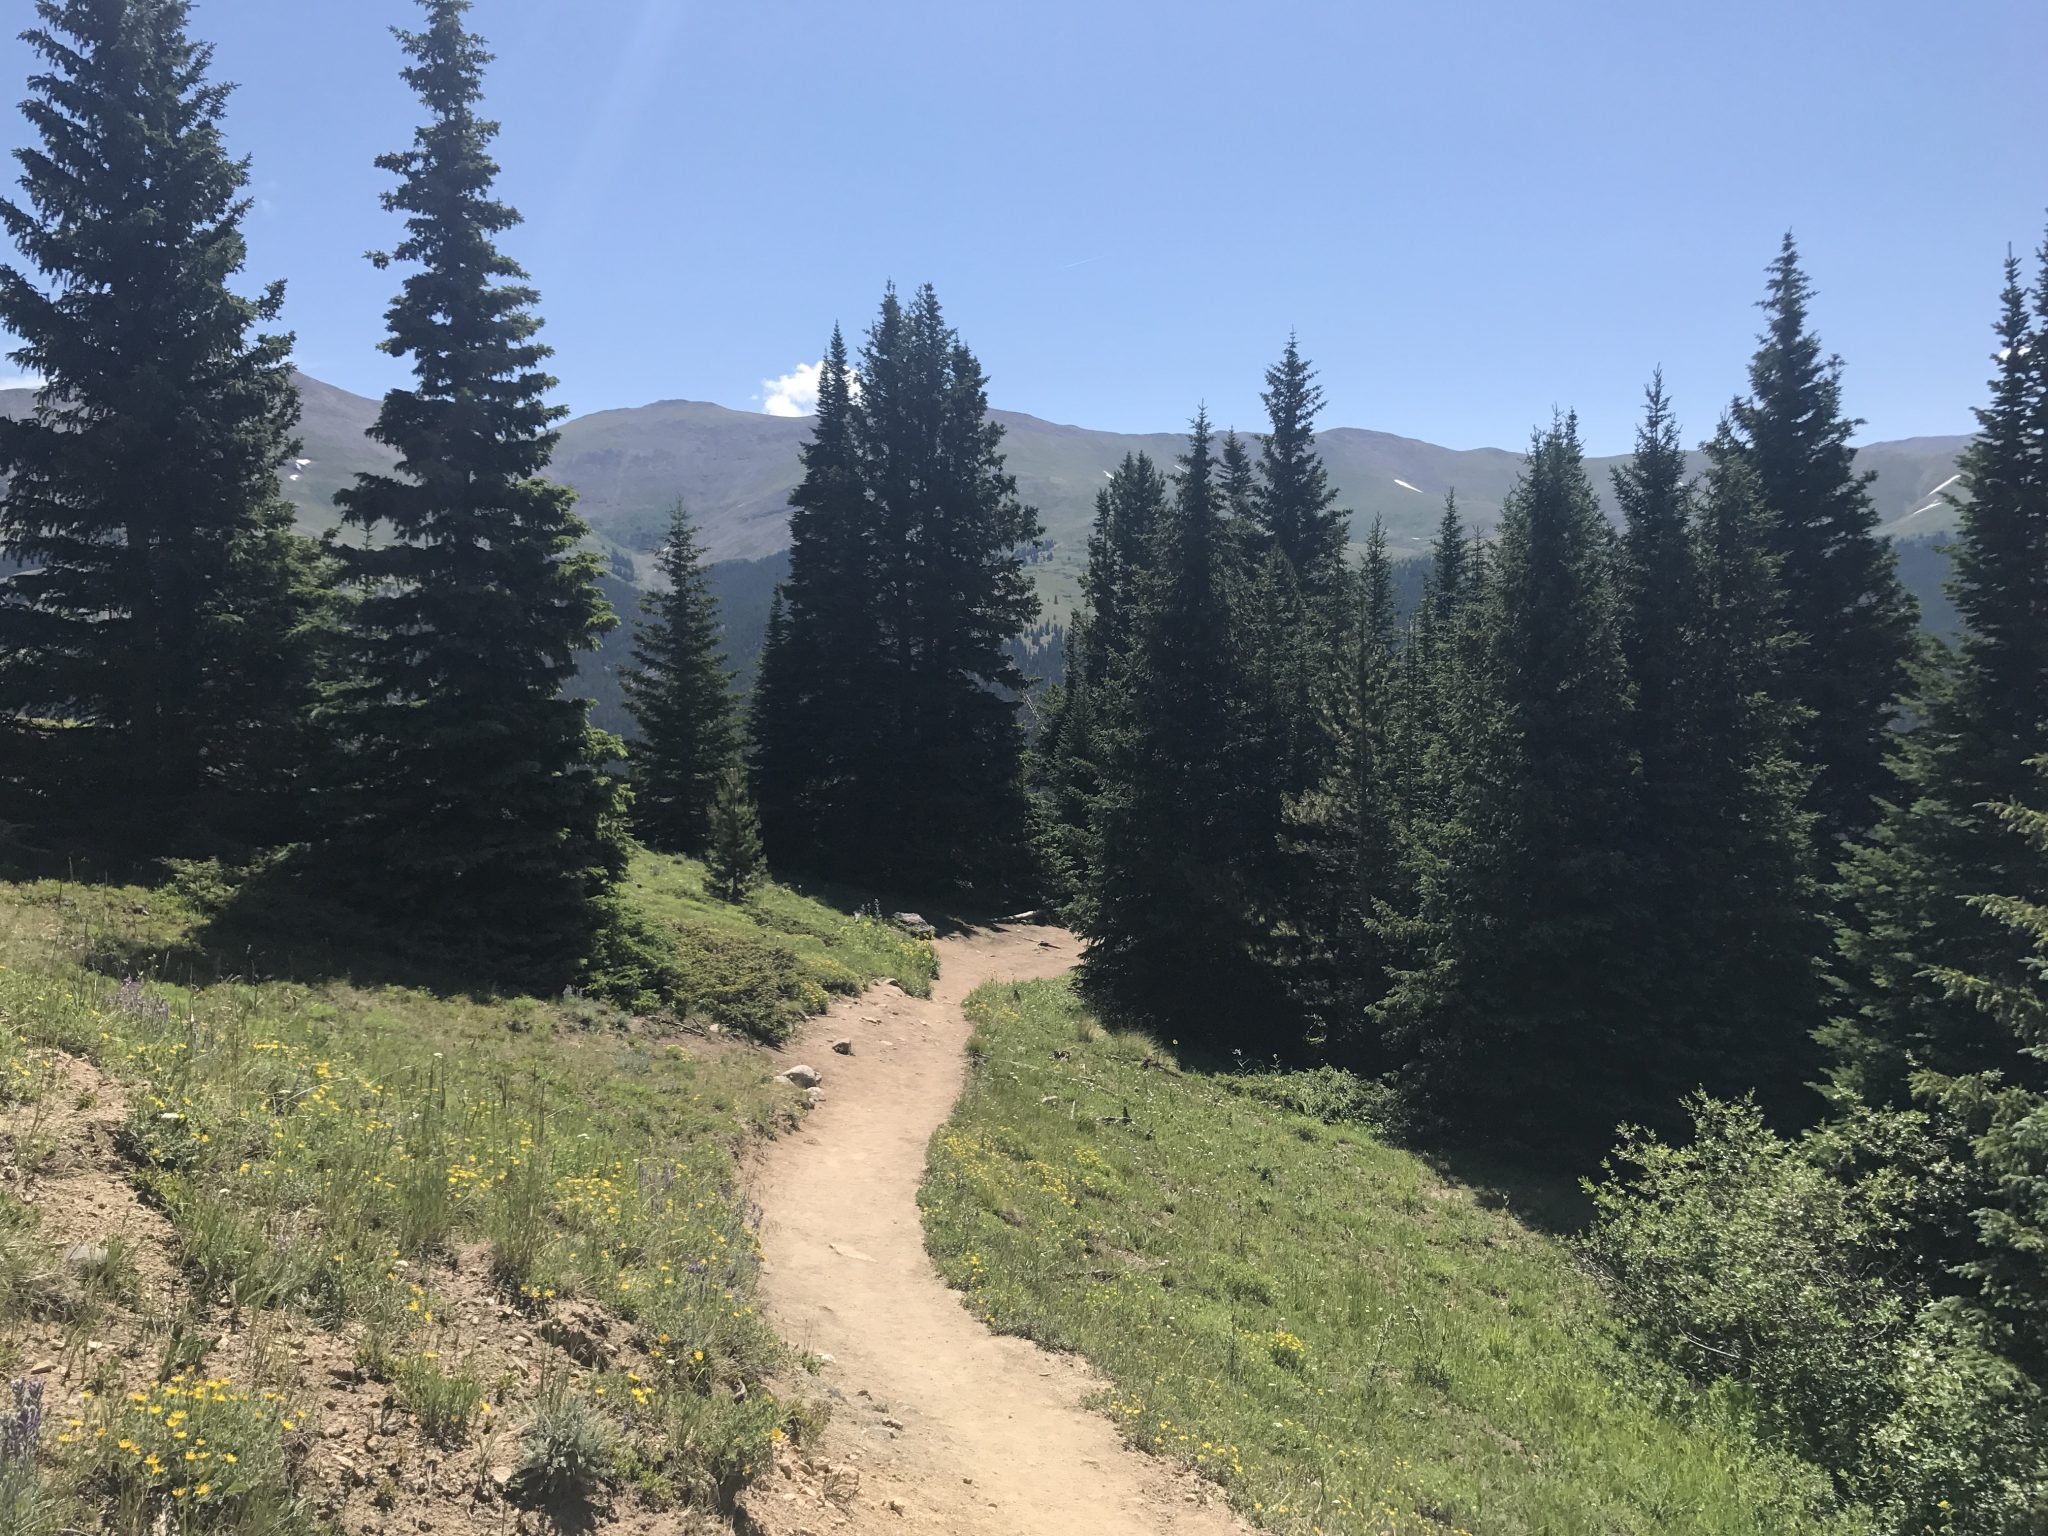 Quandary Peak Trail above the treeline